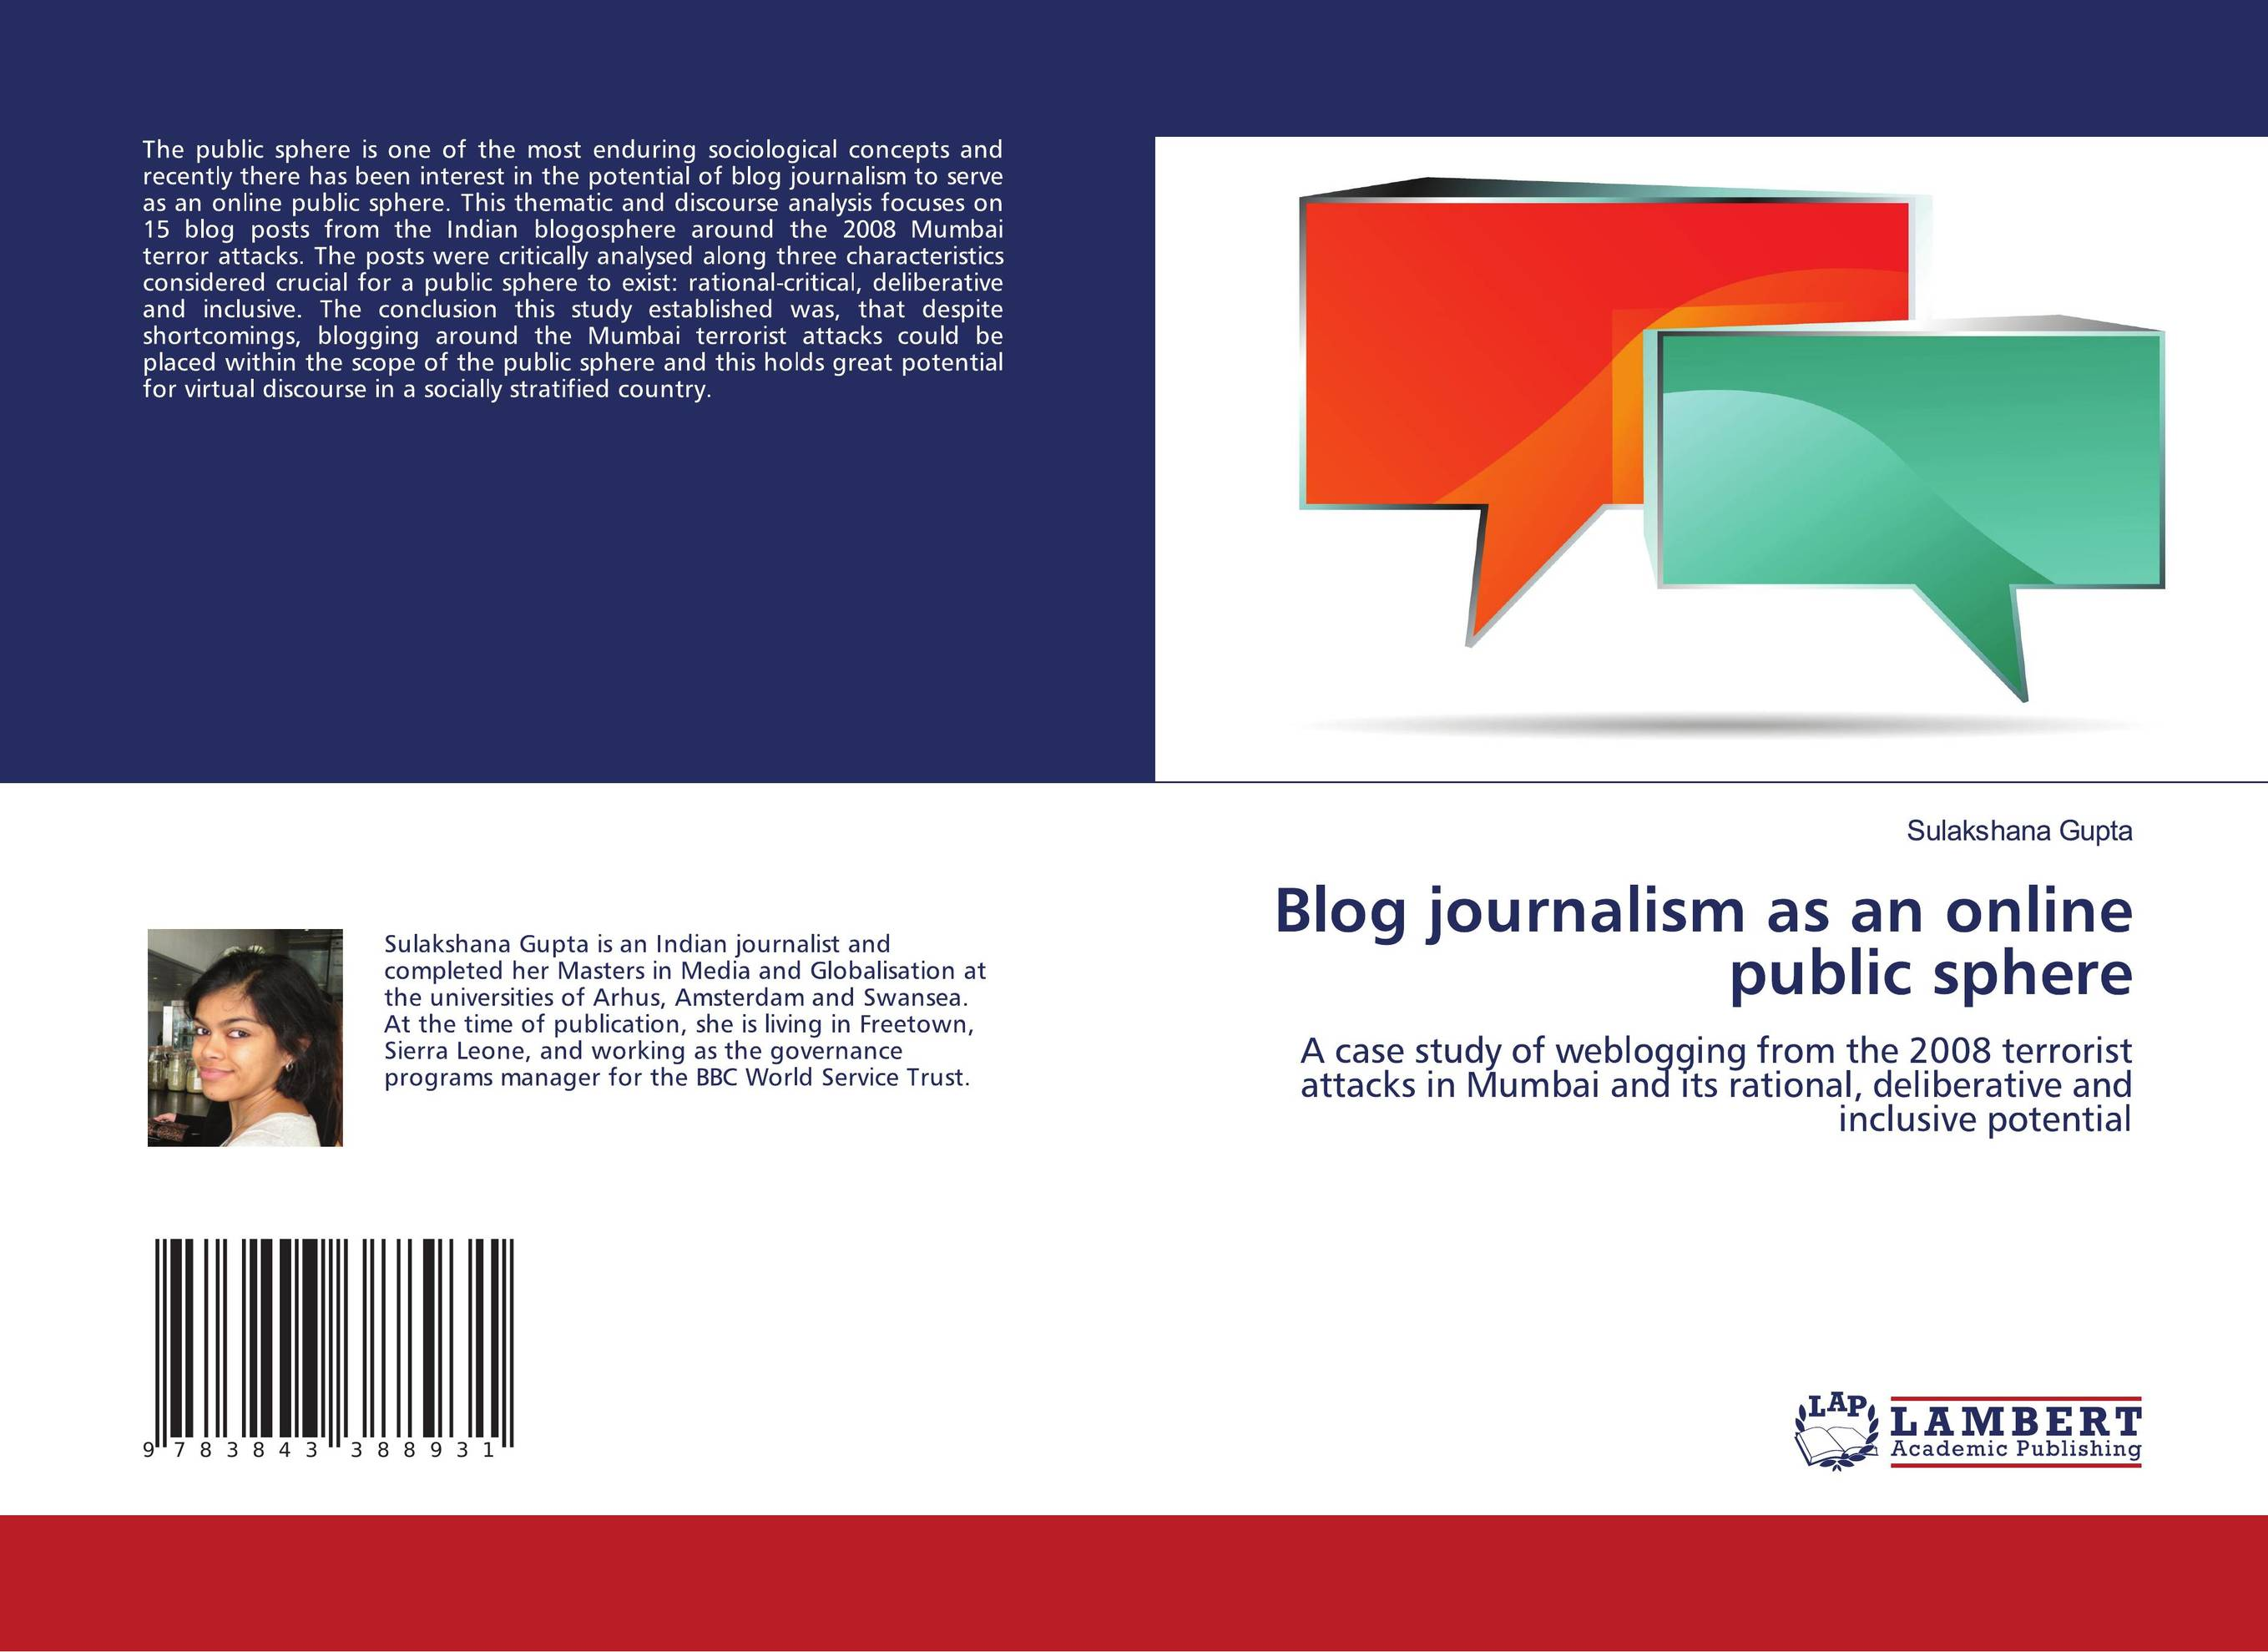 transnational satellite news, online journalism and the global public sphere essay Public sphere, global journalism, transnational publics  avid consumption of satellite tv and social media by address their news to the public.